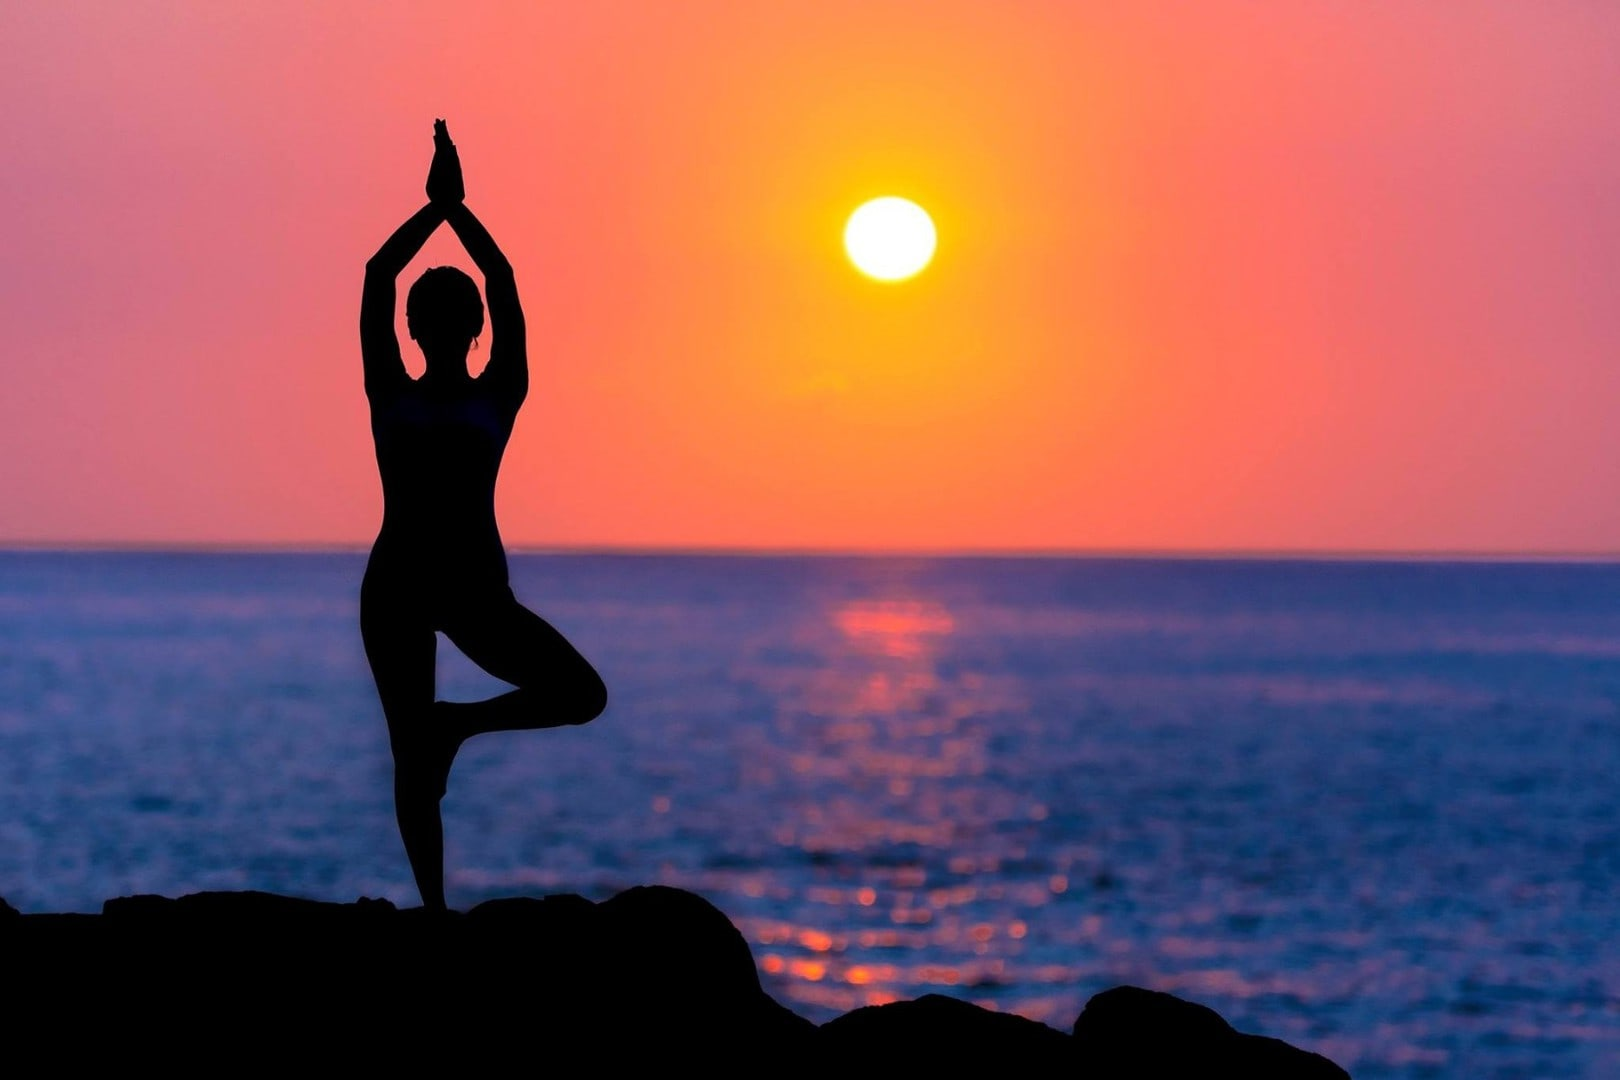 Woman standing in tree pose in front of a orange pink sunset over the ocean